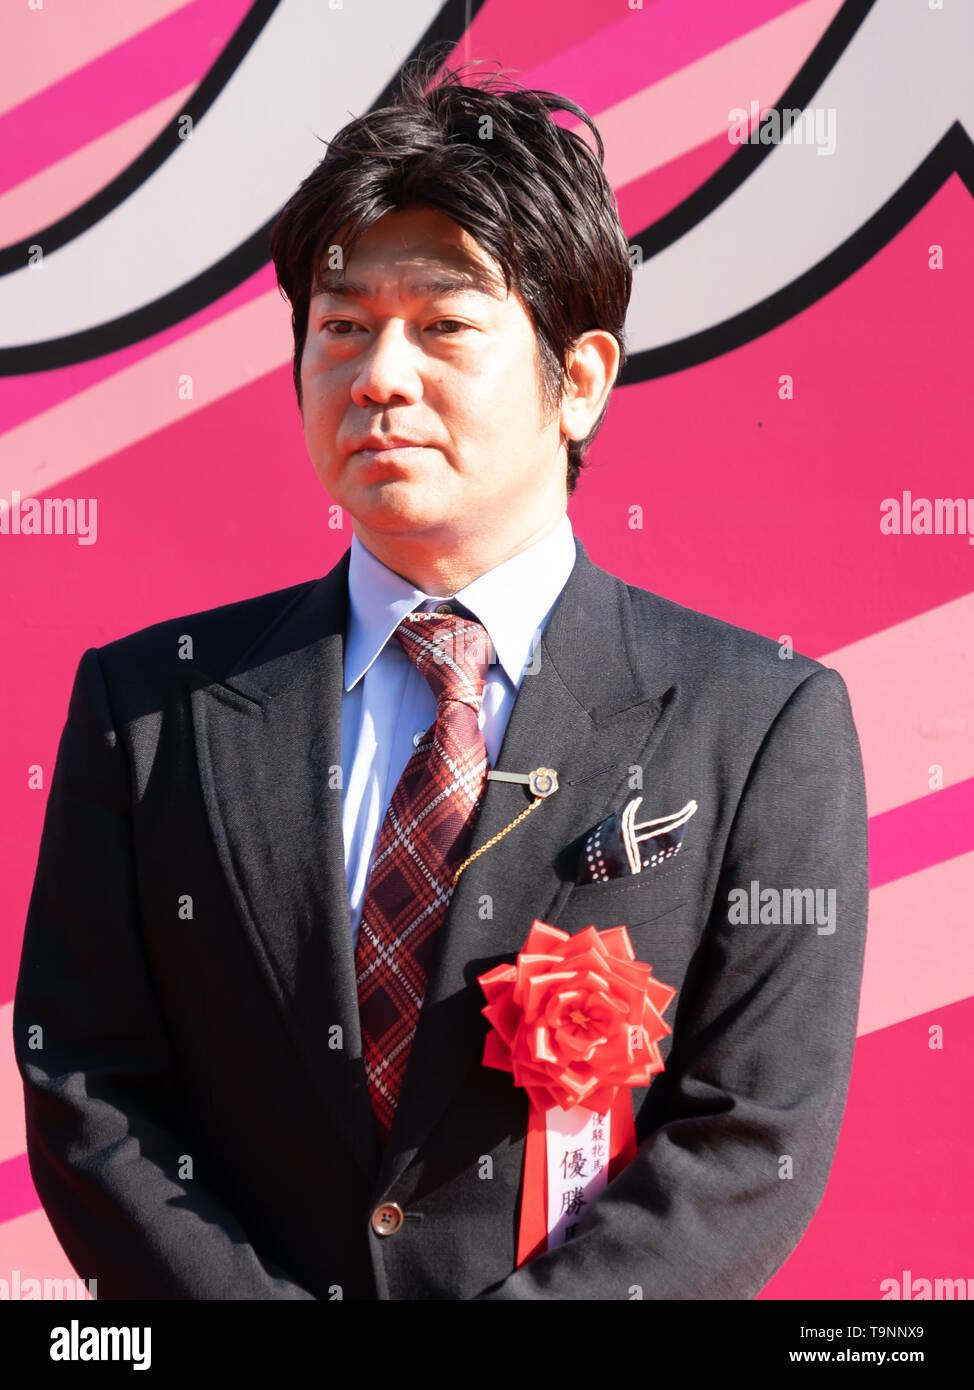 DMM Dream Club director Takumi Nomoto attends winning ceremony of the 80th Japanese Oaks (G1 2400m) at Tokyo Racecourse, Tokyo, Japan on 19 May 2019. Credit: Motoo Naka/AFLO/Alamy Live News - Stock Image